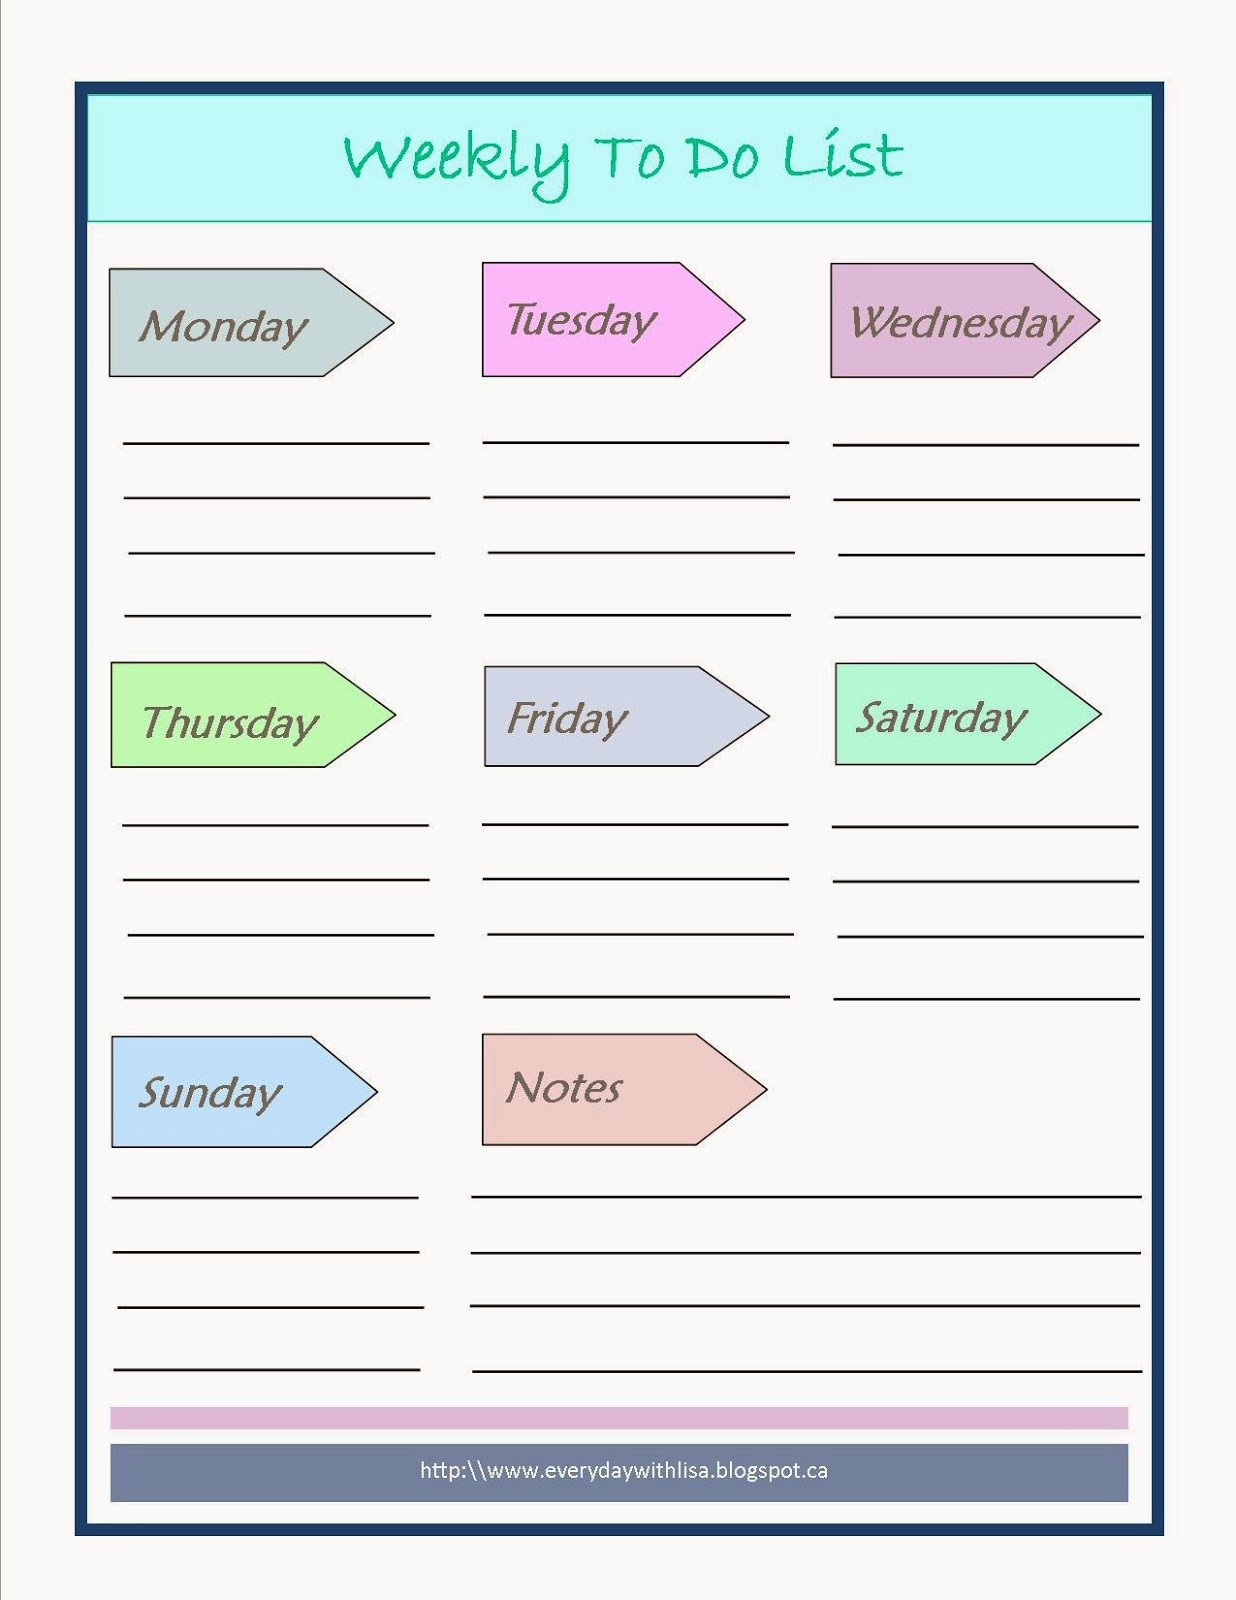 Weekly to Do List Templates Beautiful Everyday with Lisa Meal Planning & to Do List Printables